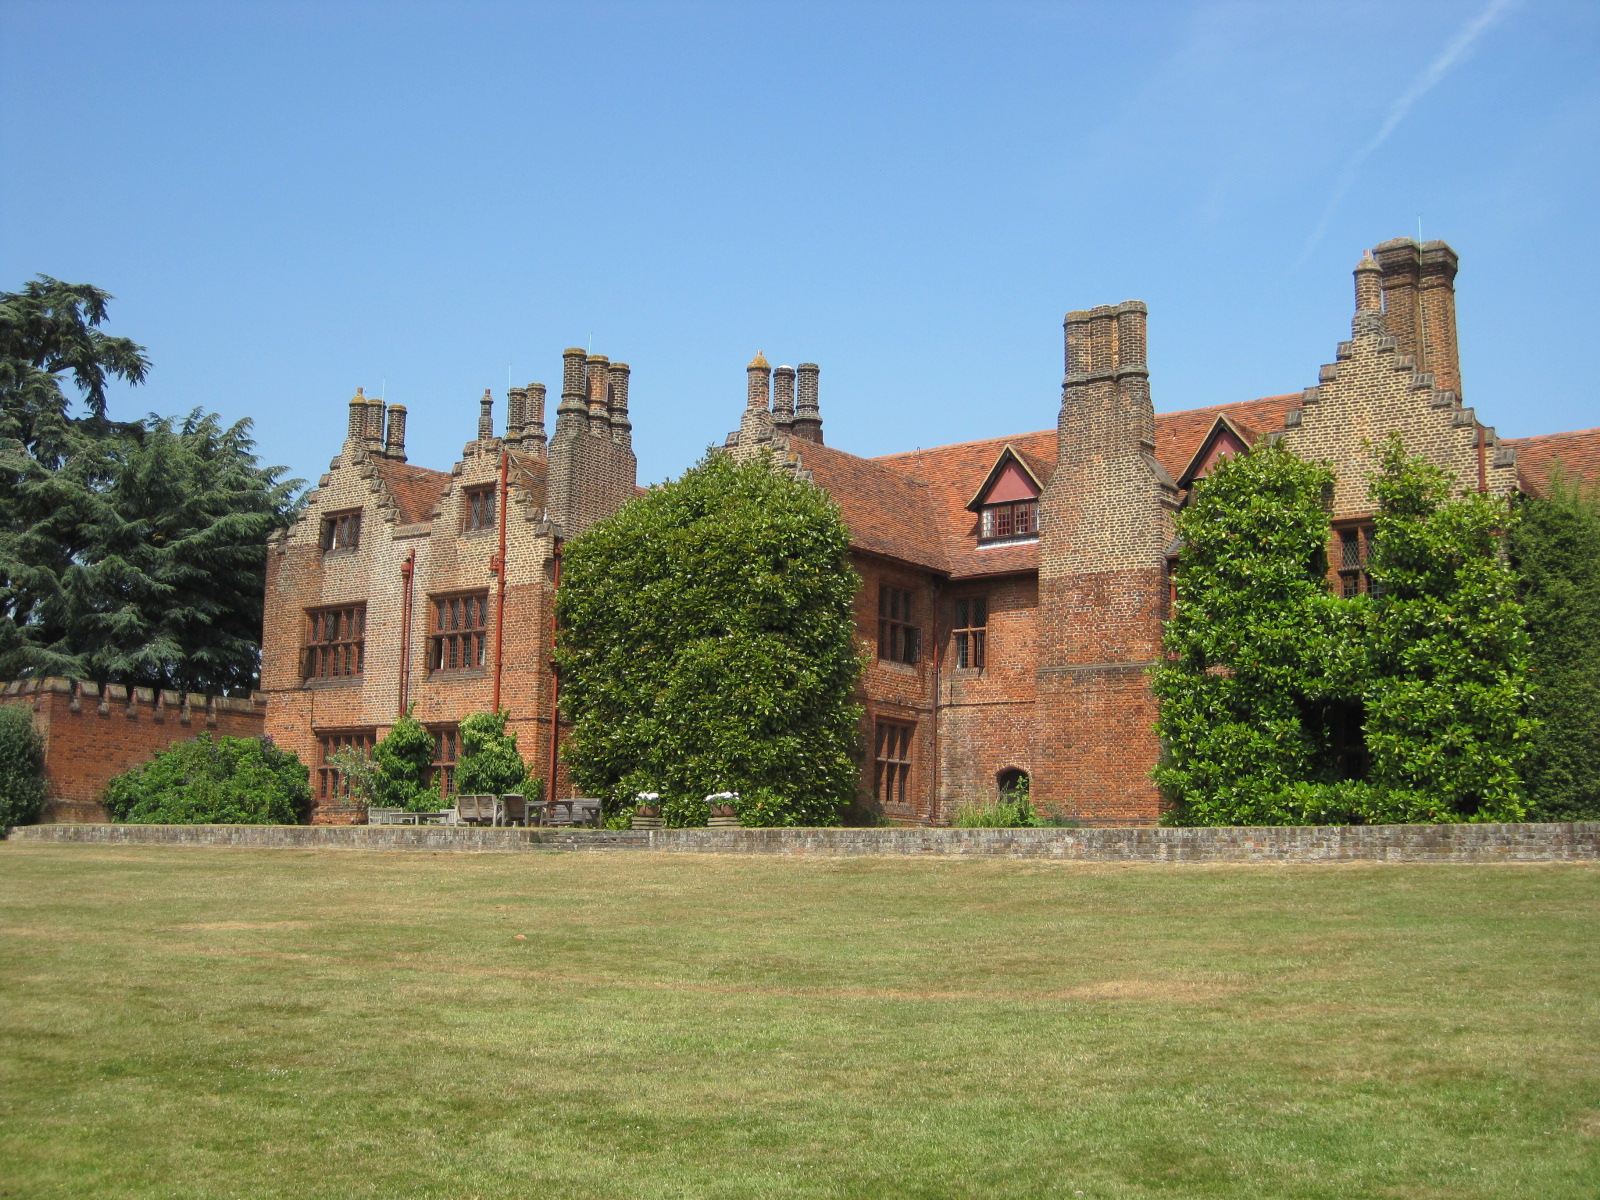 Ingatestone Hall - photo by Juliamaud